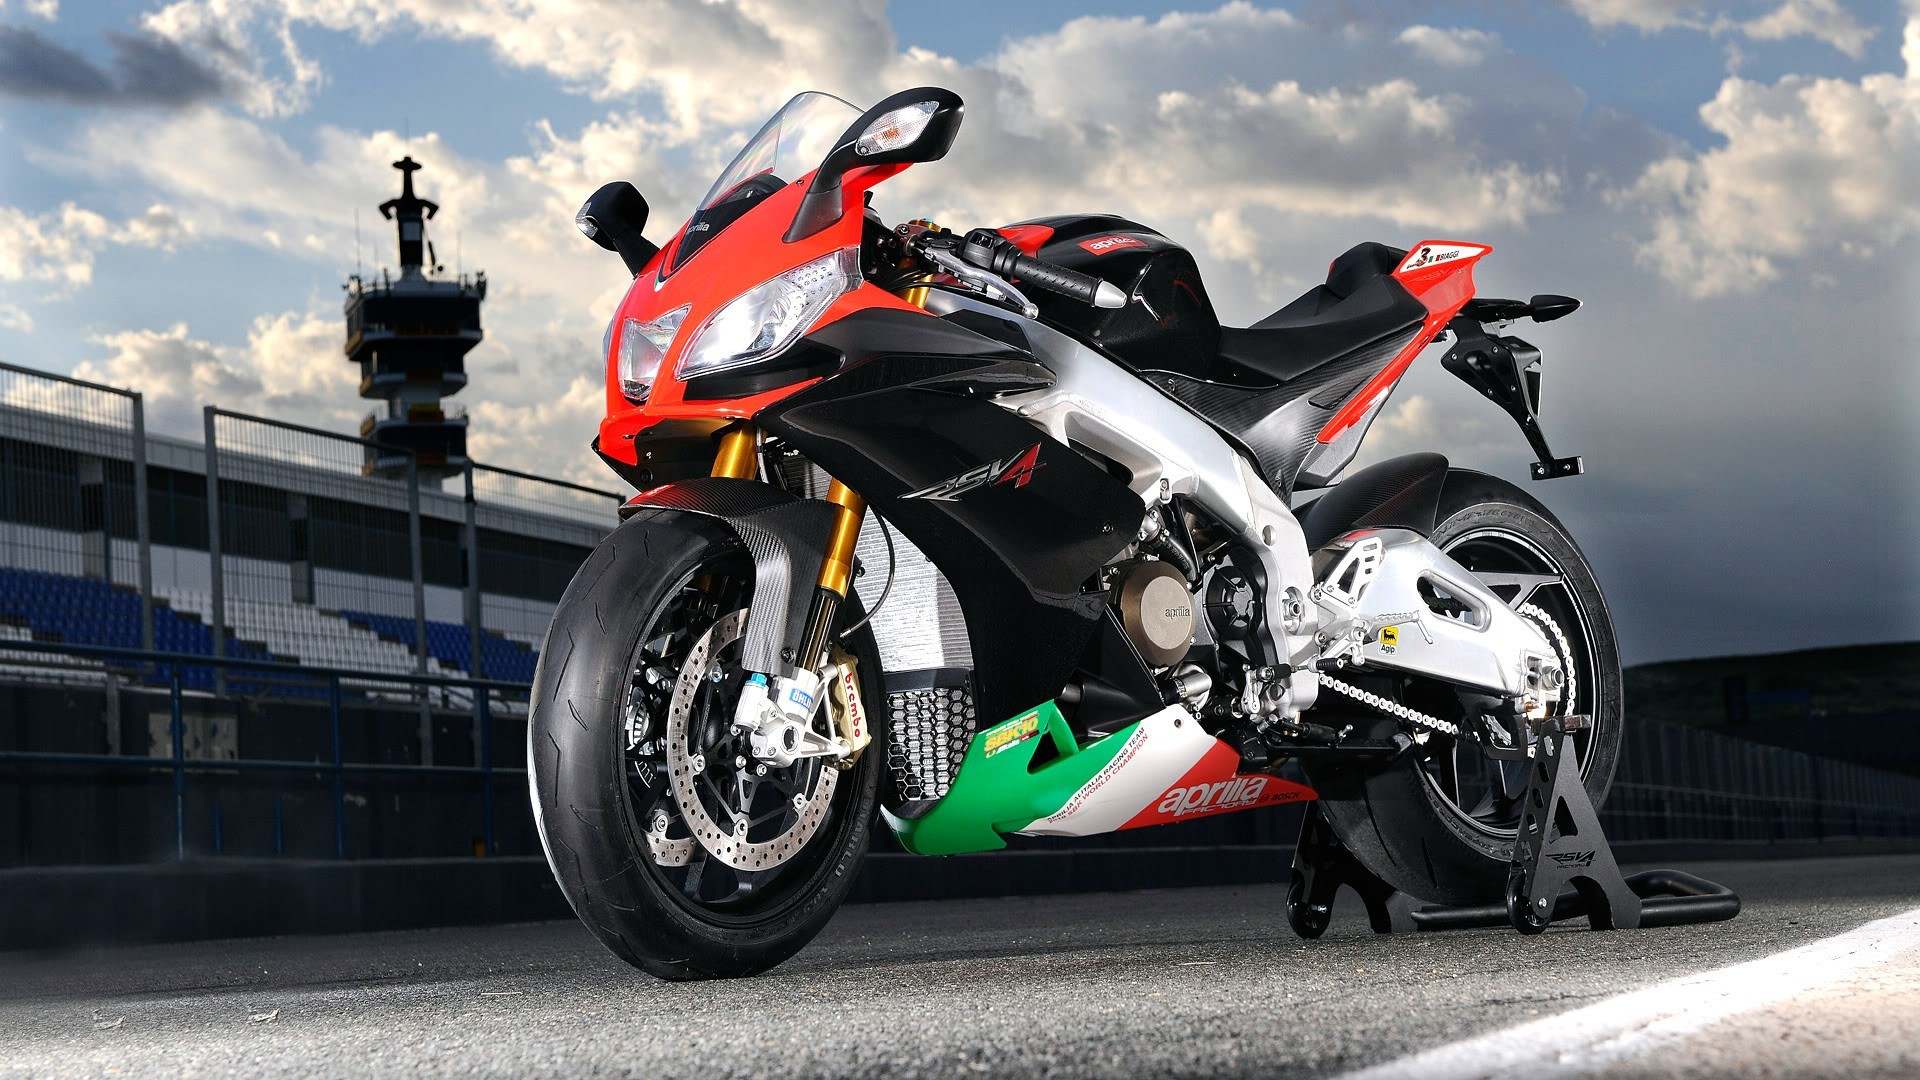 Aprilia RSV4 Wallpapers and Background Images   stmednet 1920x1080